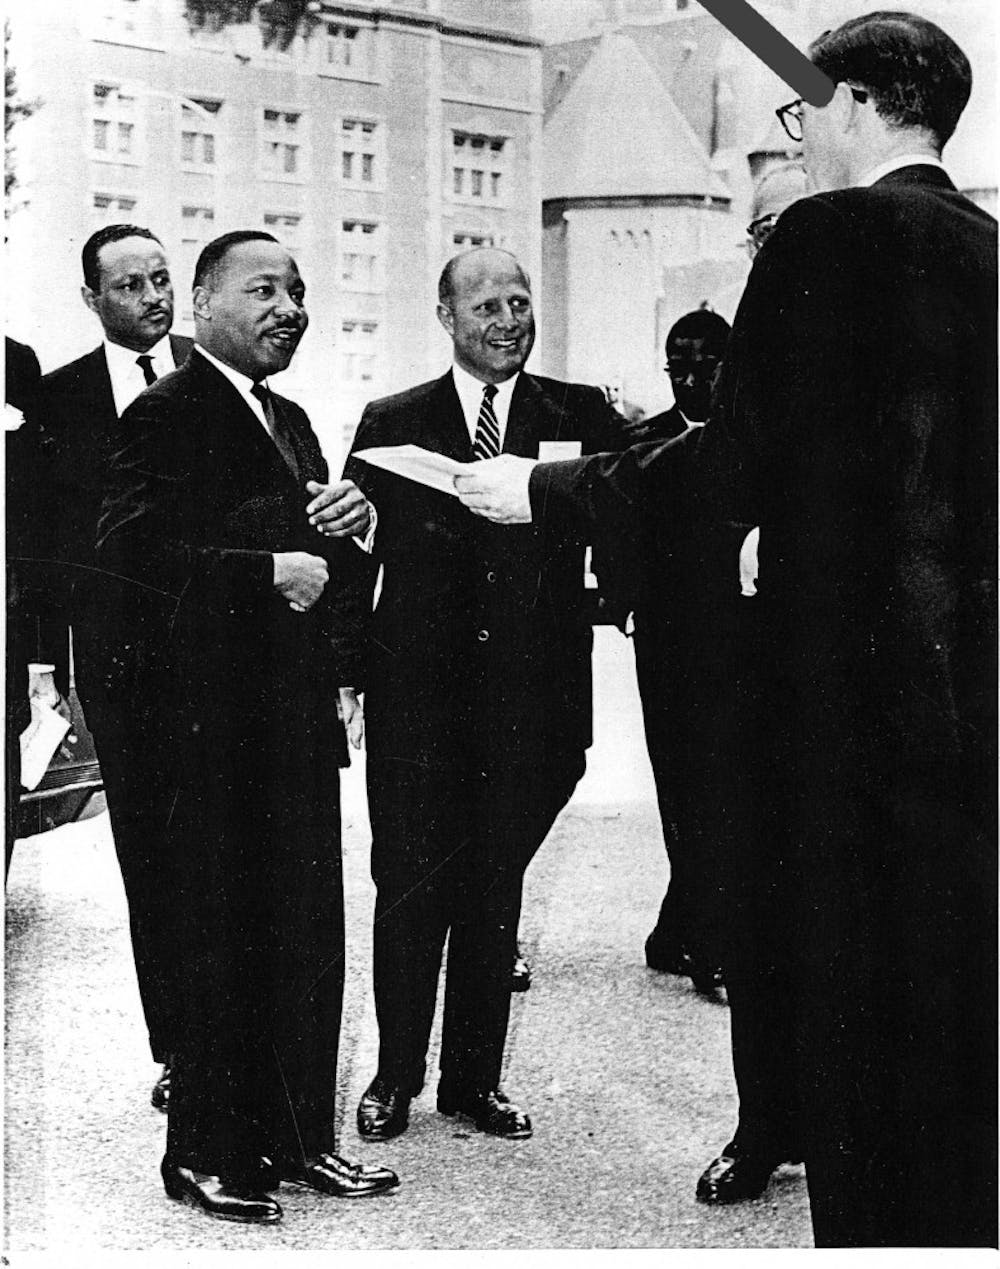 """In May 1965,Martin Luther King Jr. returned to Penn's campus to speak at multiple panel discussions during the University's annual """"Law Day U.S.A."""""""